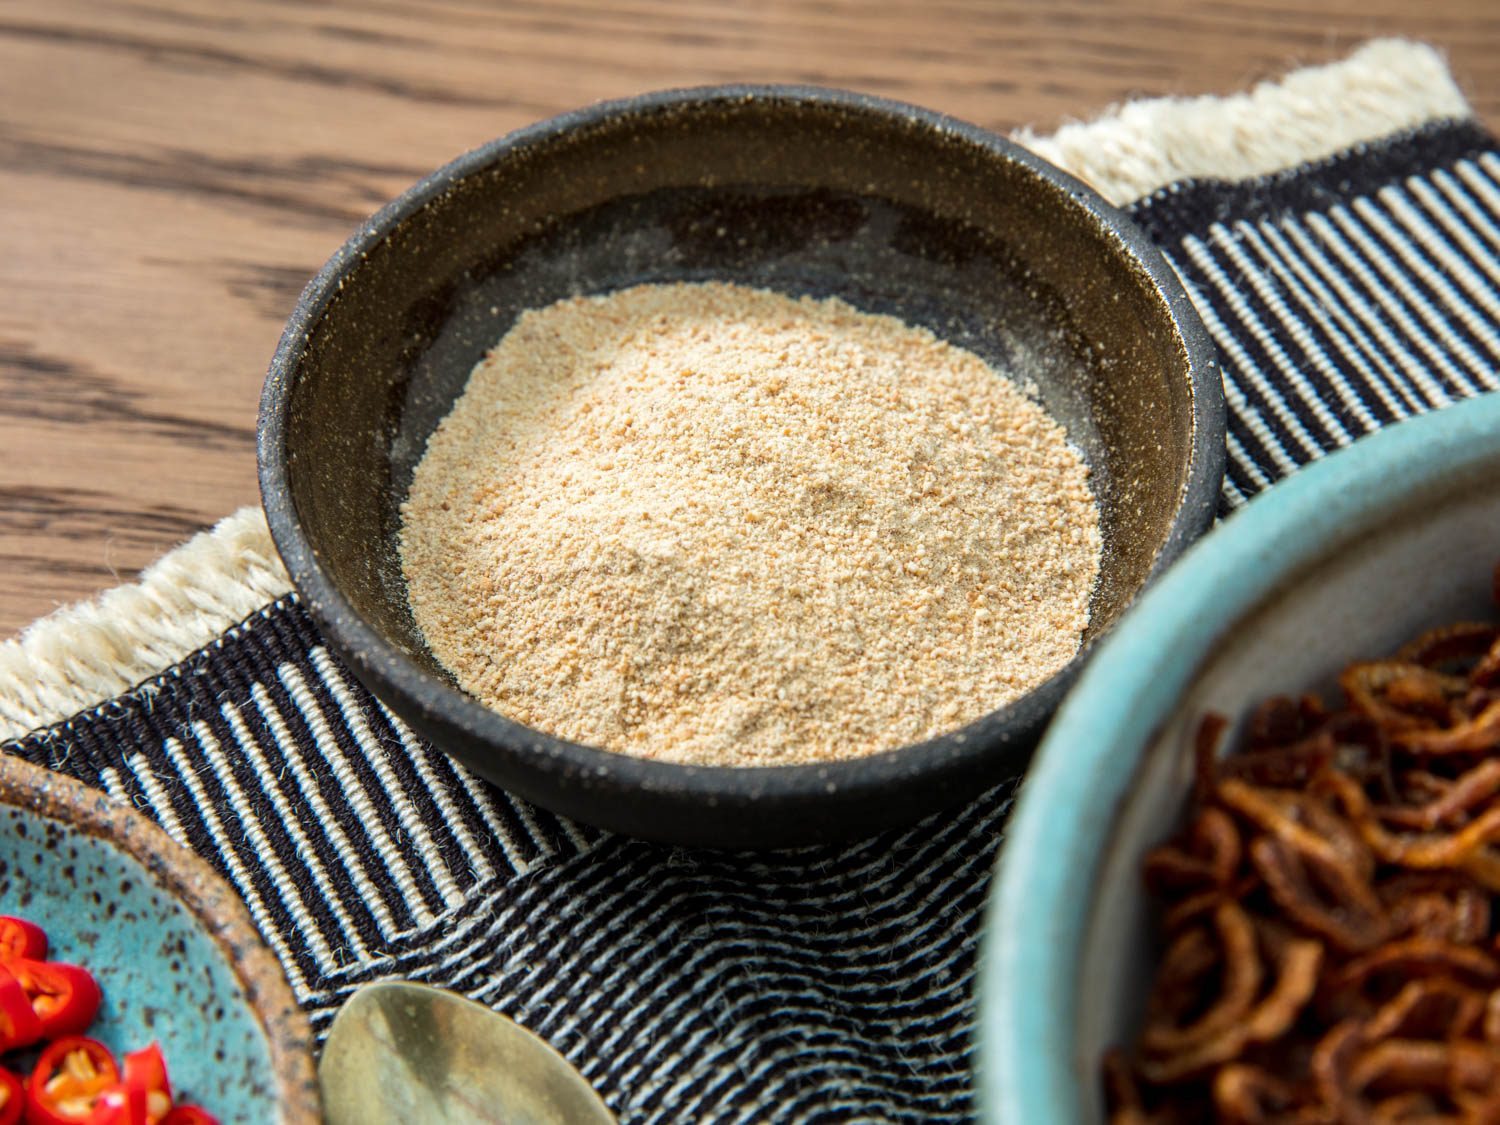 Thai Toasted-Rice Powder (Khao Khua)